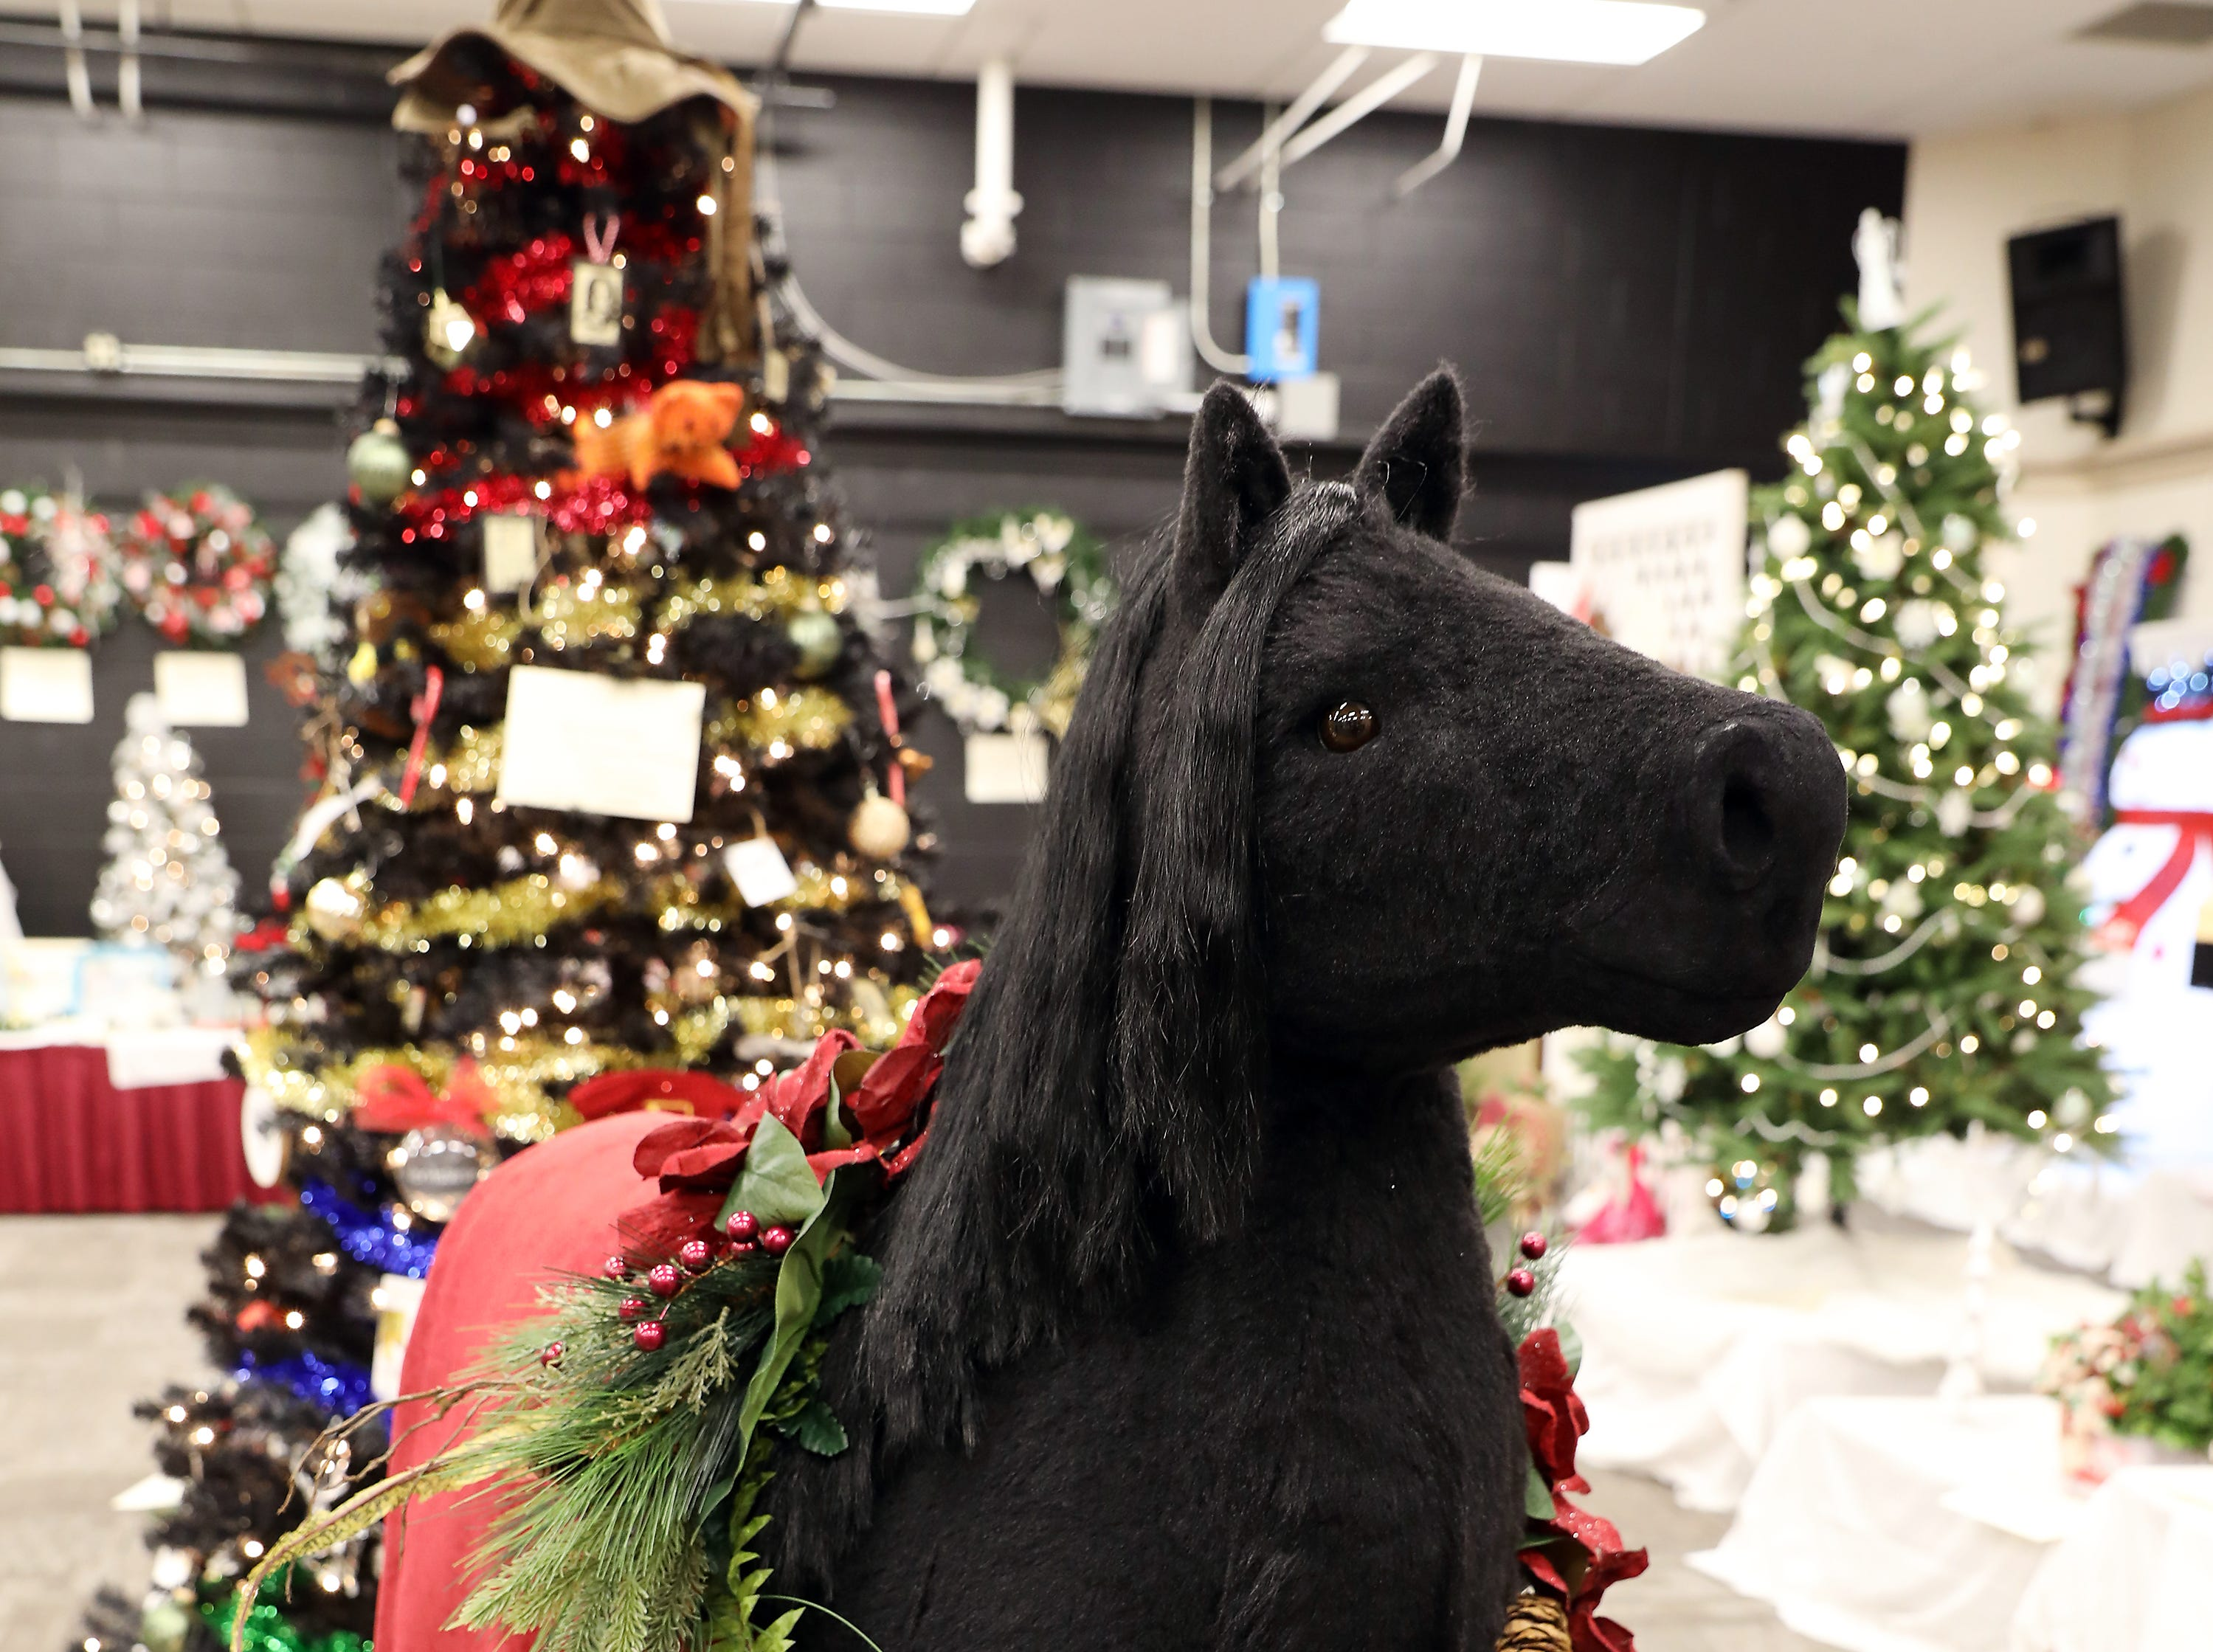 203	5:00 PM	Quality Care Partners	Other	The Gift Horse	This thoroughbred is dressed in his black winter coat adorned in shades of Christmas Red		2 tickets to the Columbus Blue Jackets game against the New Jersey Devils. Tuesday, January 15, 2019 at 7:00pm.